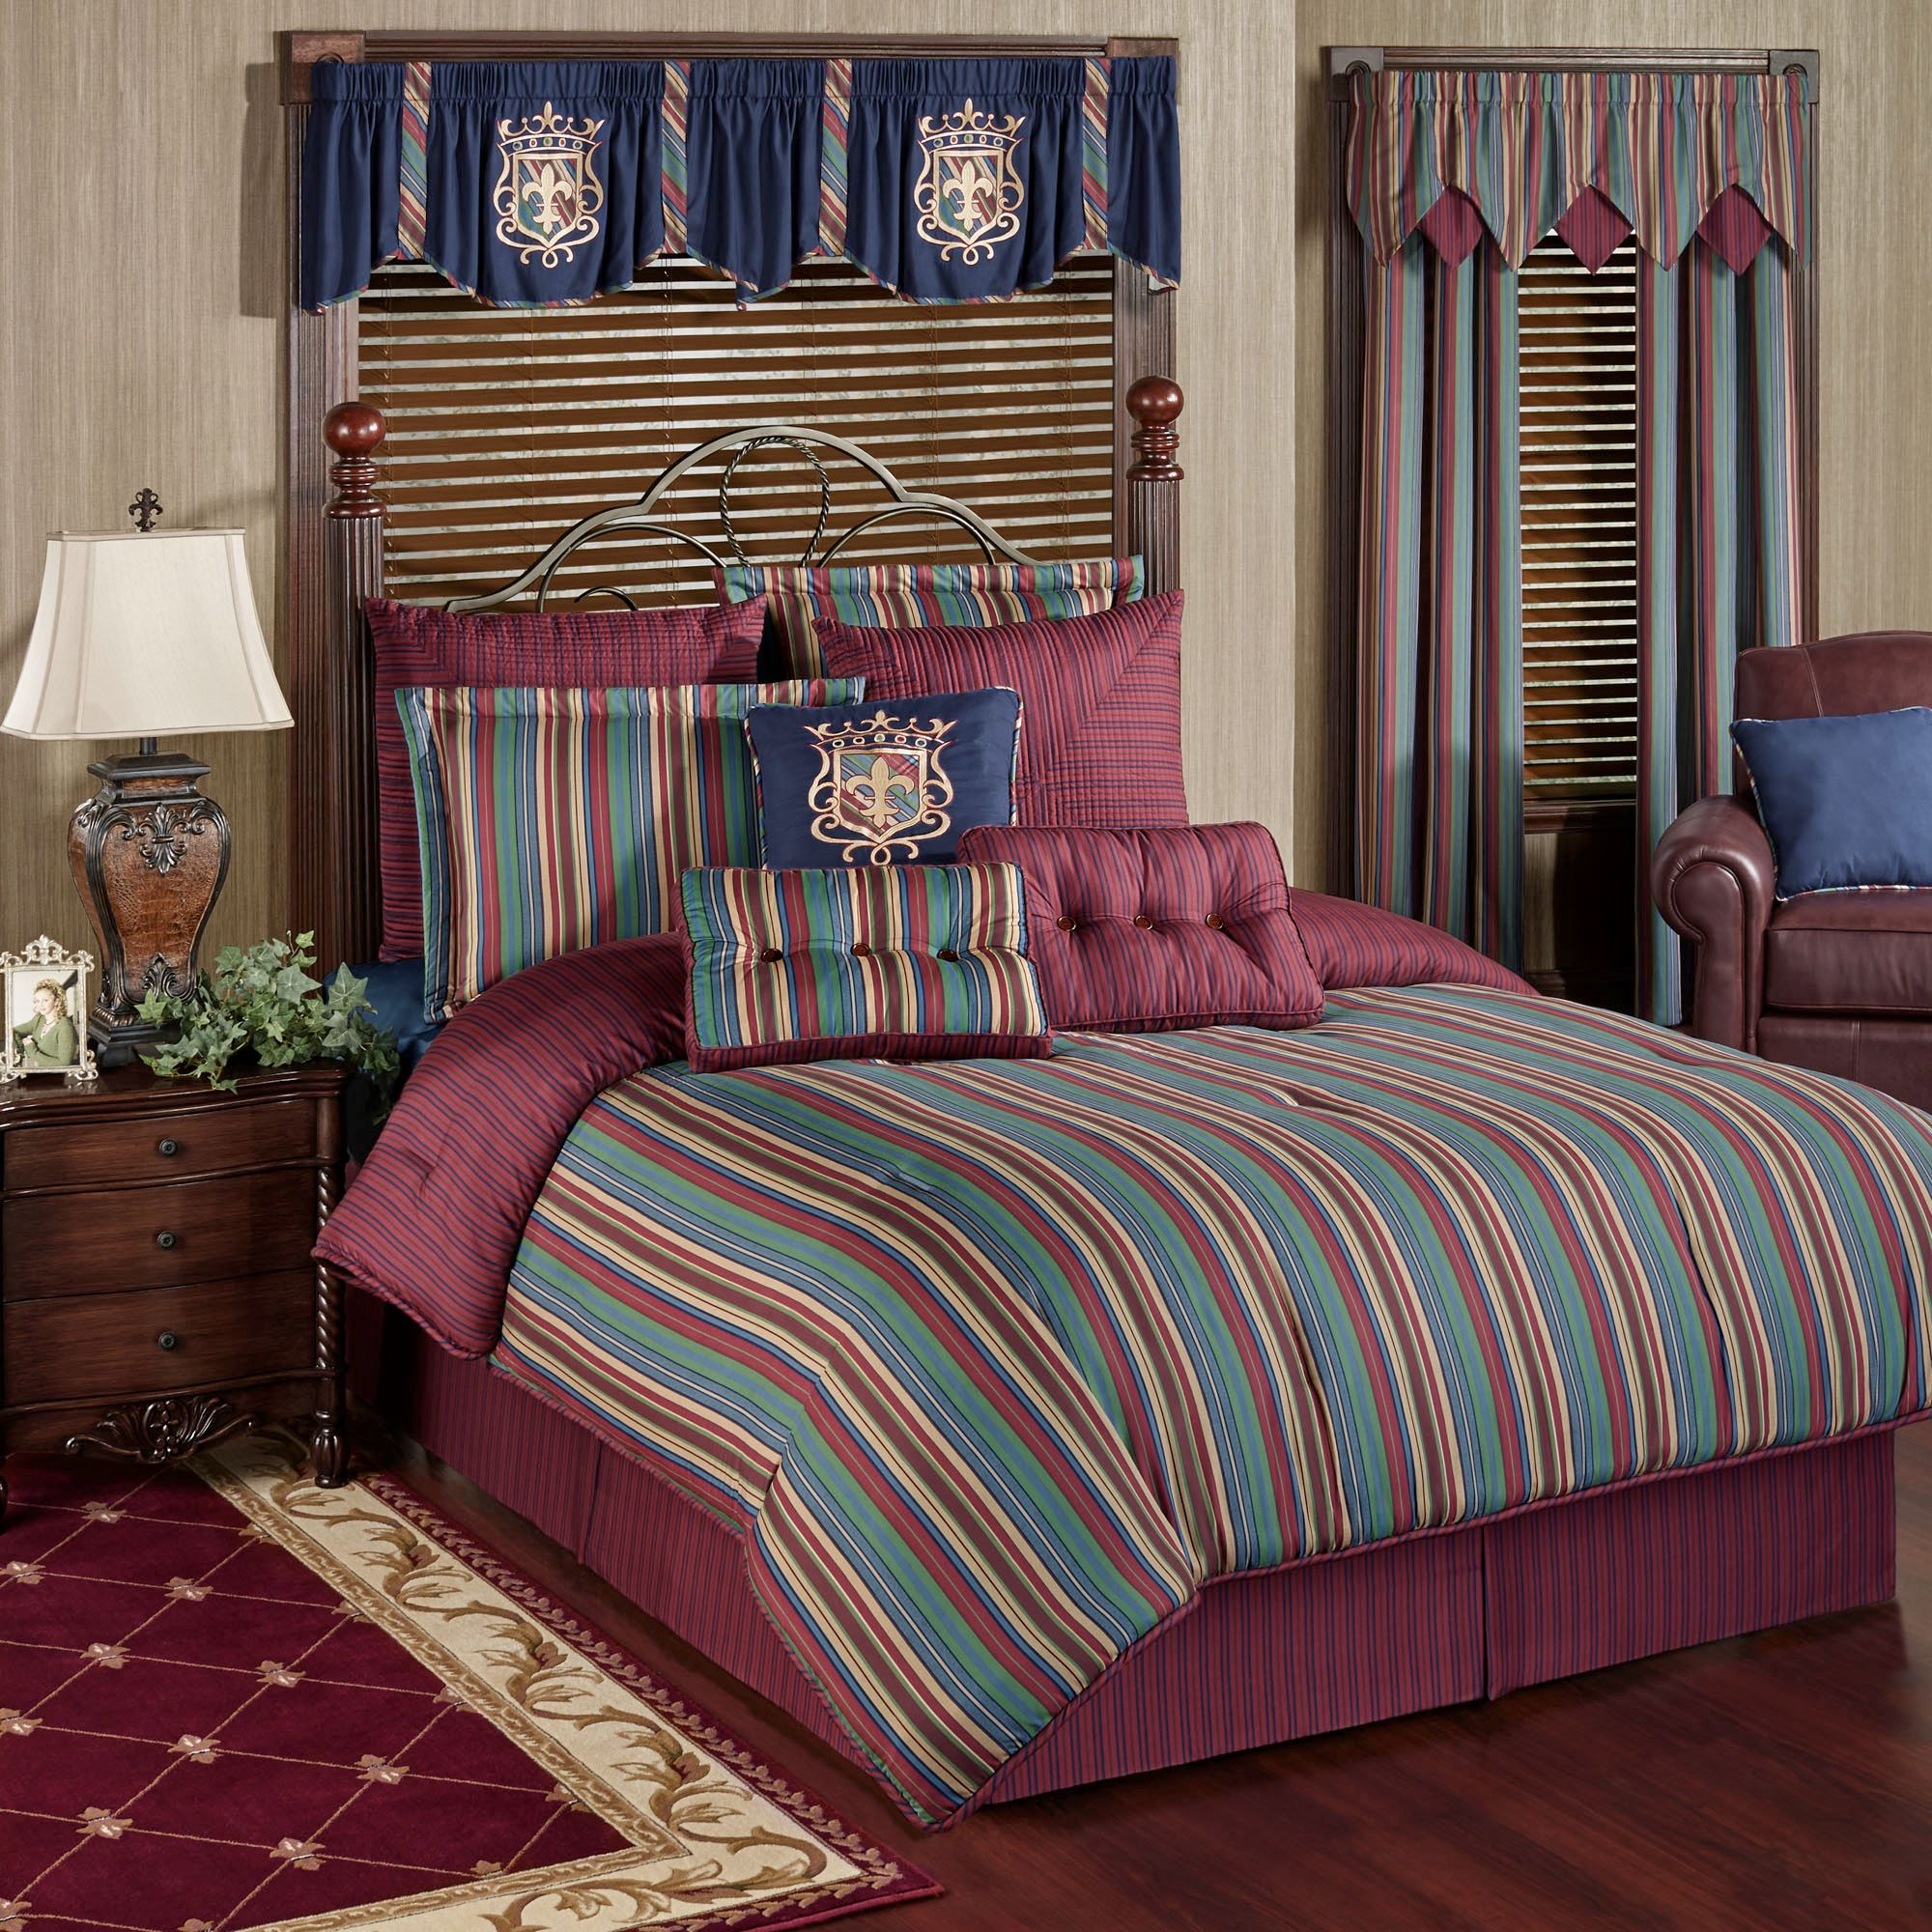 walmart king burgundy comforter red pc embroidered brown ip set striped casablanca com tan moroccan trellis